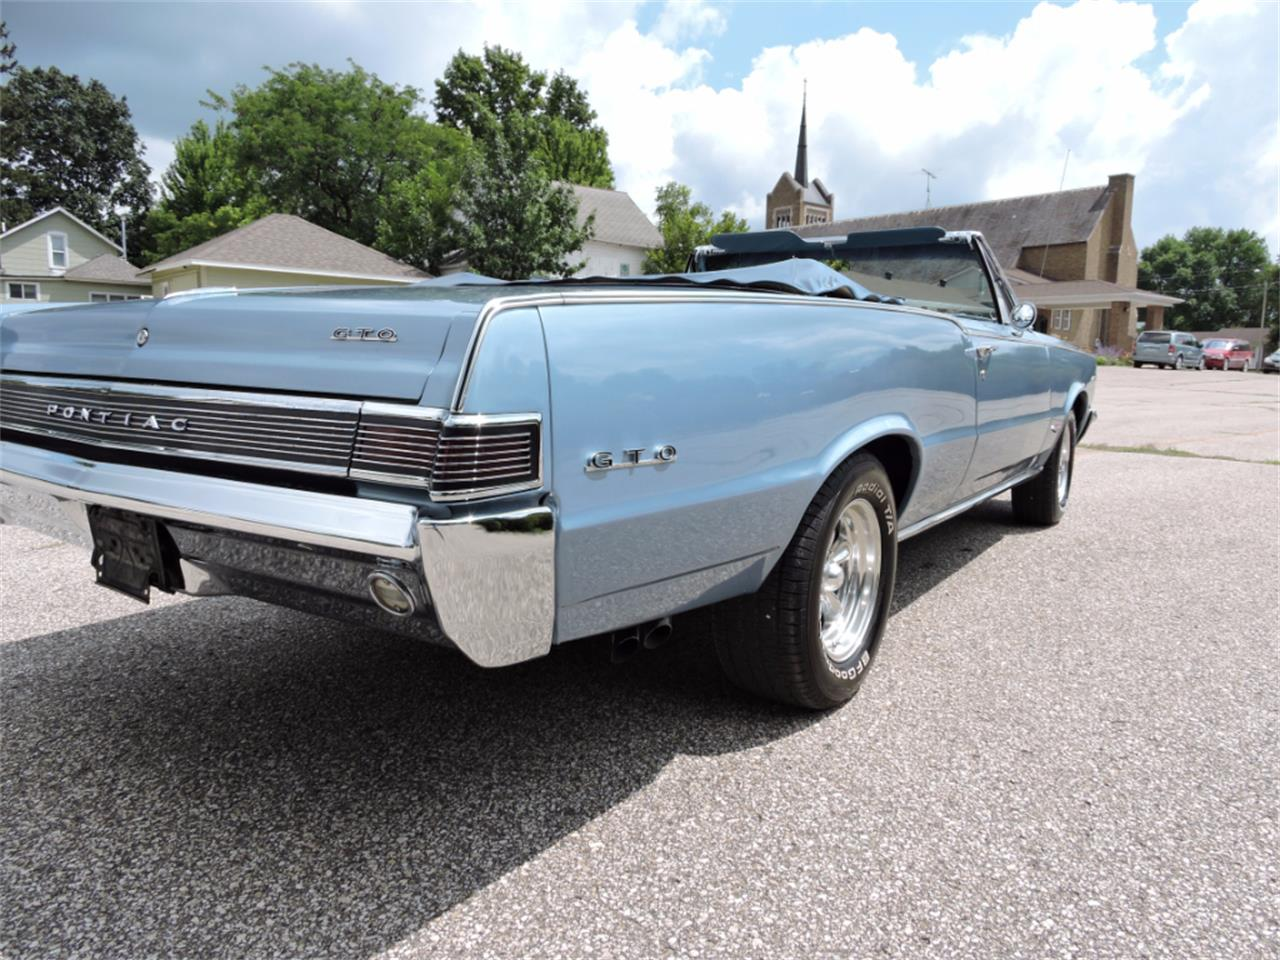 Large Picture of '65 Pontiac LeMans located in Iowa - $31,995.00 Offered by Coyote Classics - LMH7